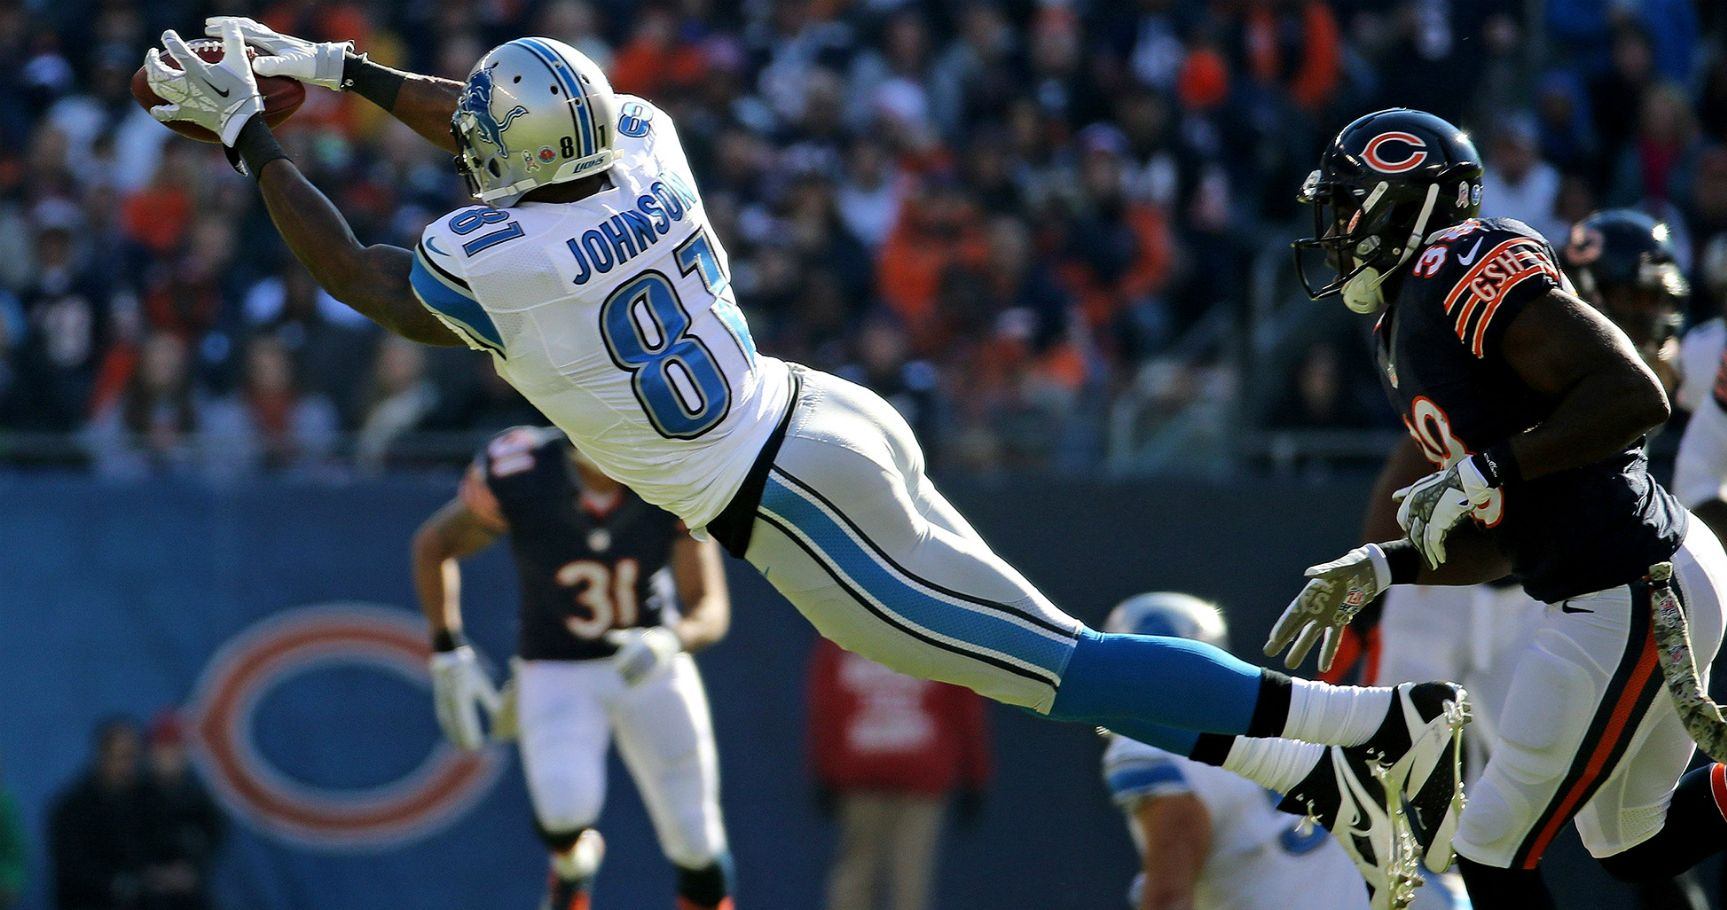 Top 20 Greatest NFL Wide Receivers of All Time